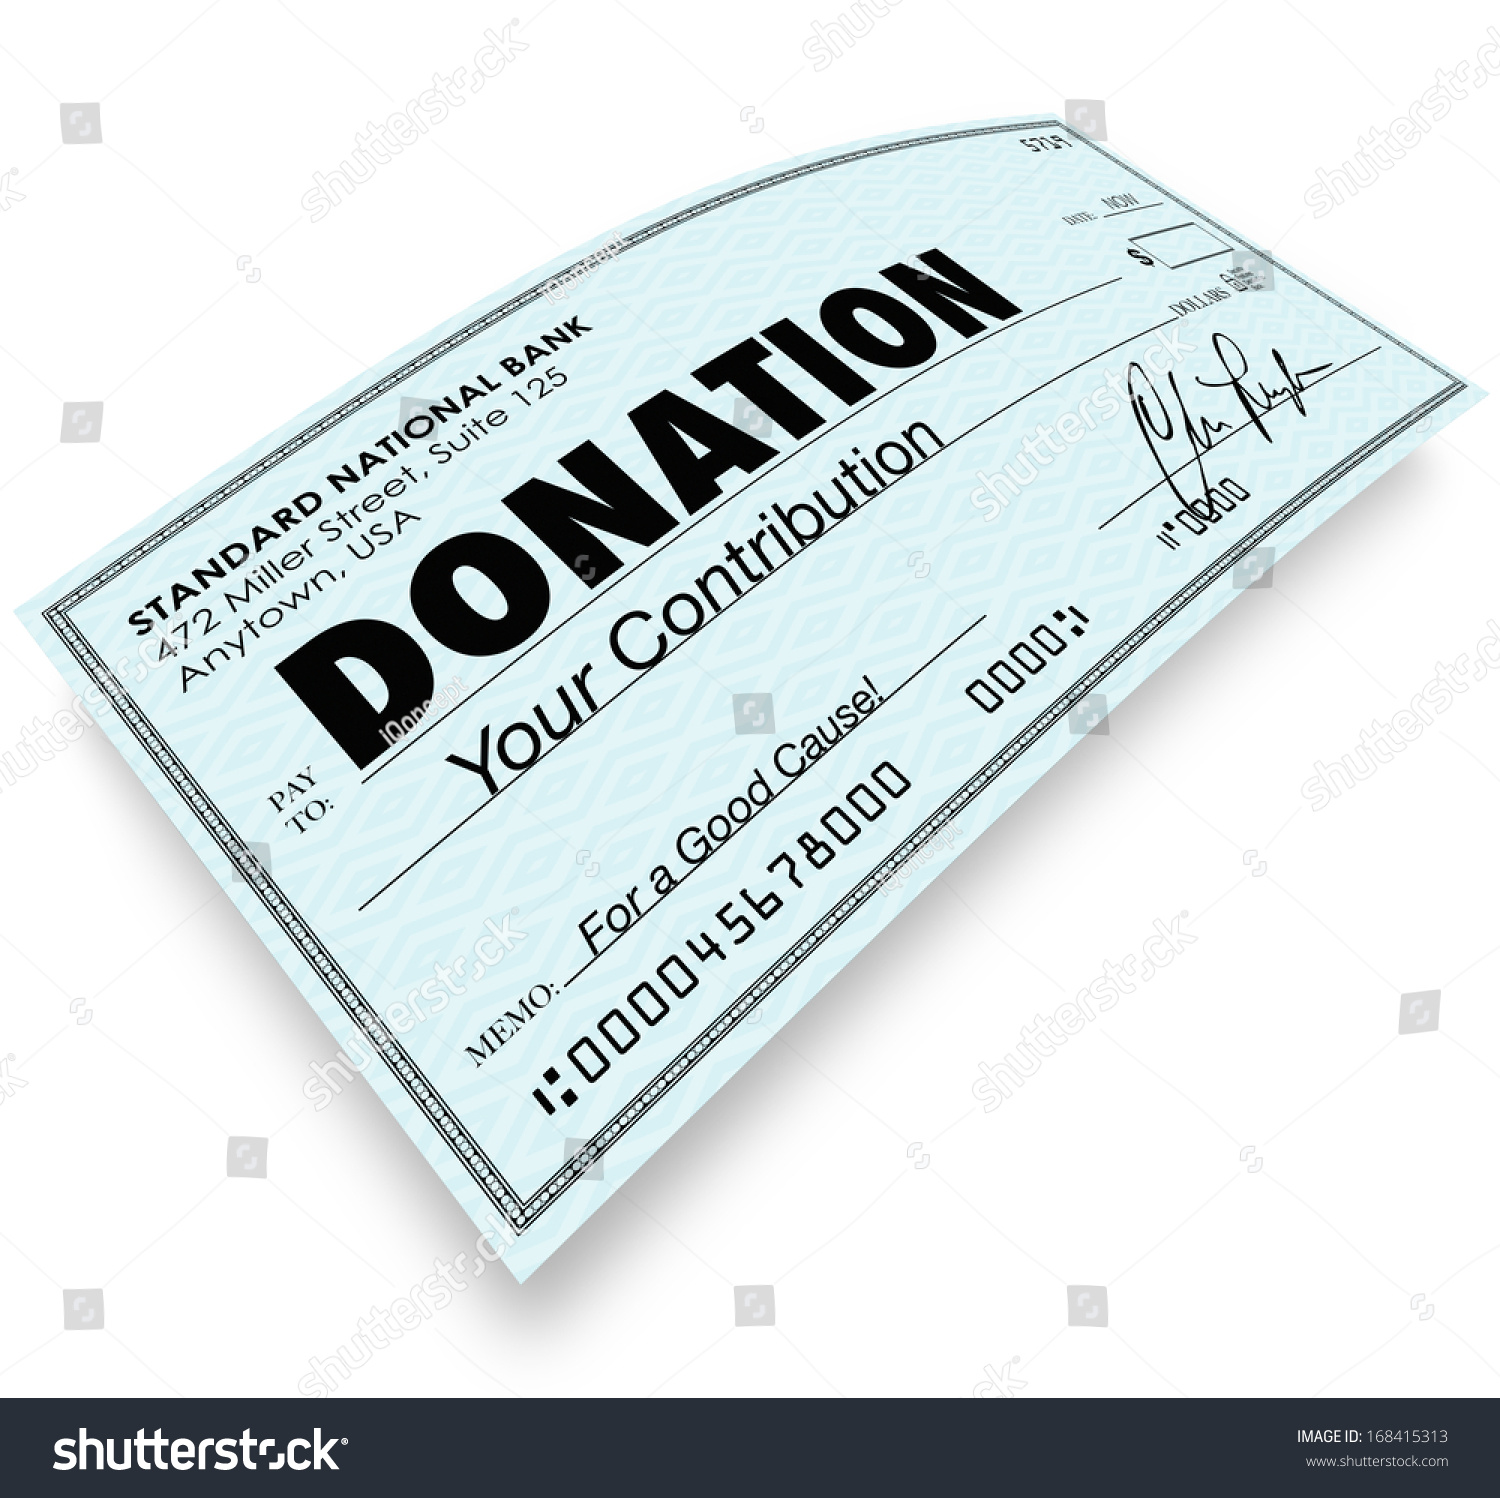 Donating stock options to charity